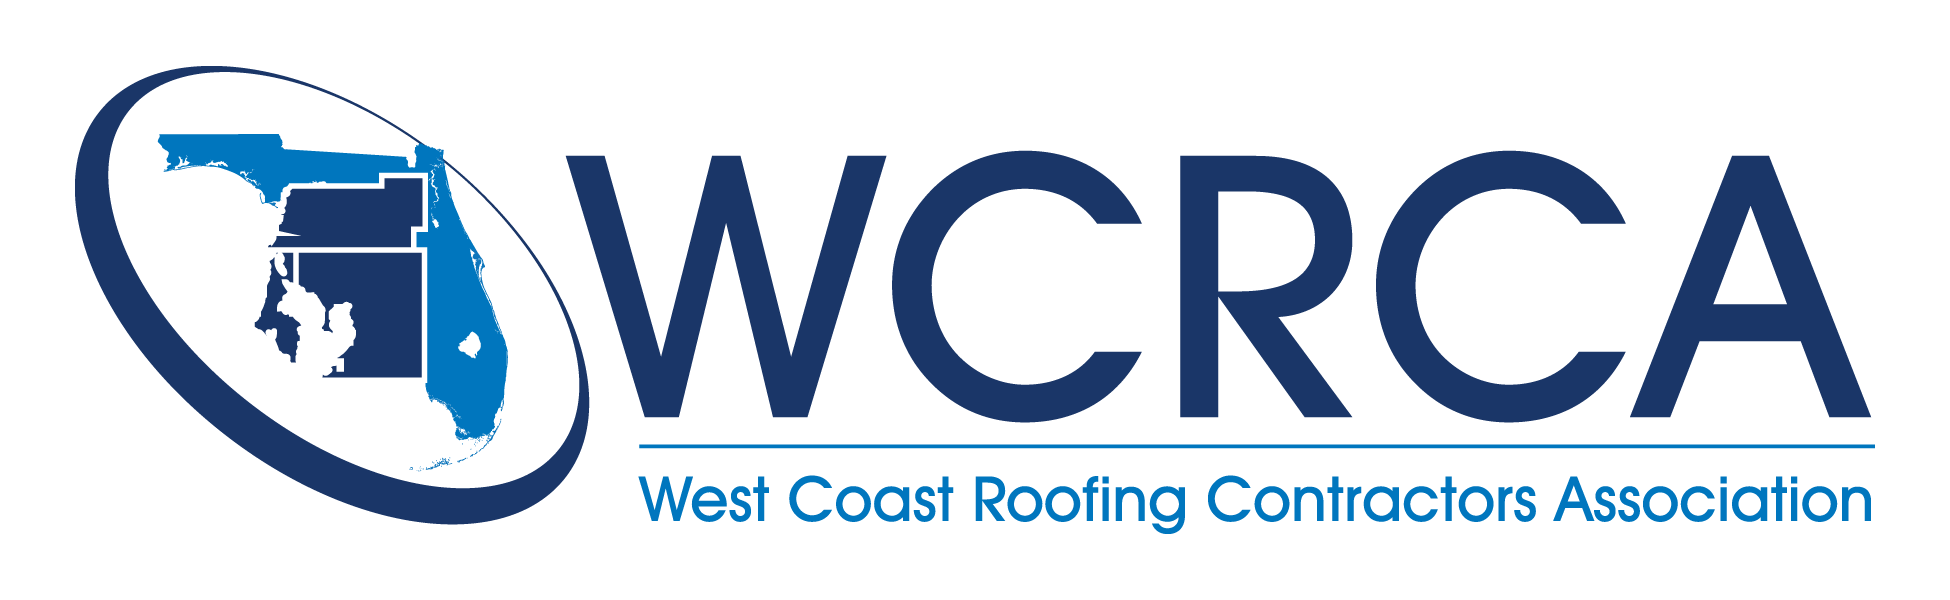 West Coast Roofing Contractors Association